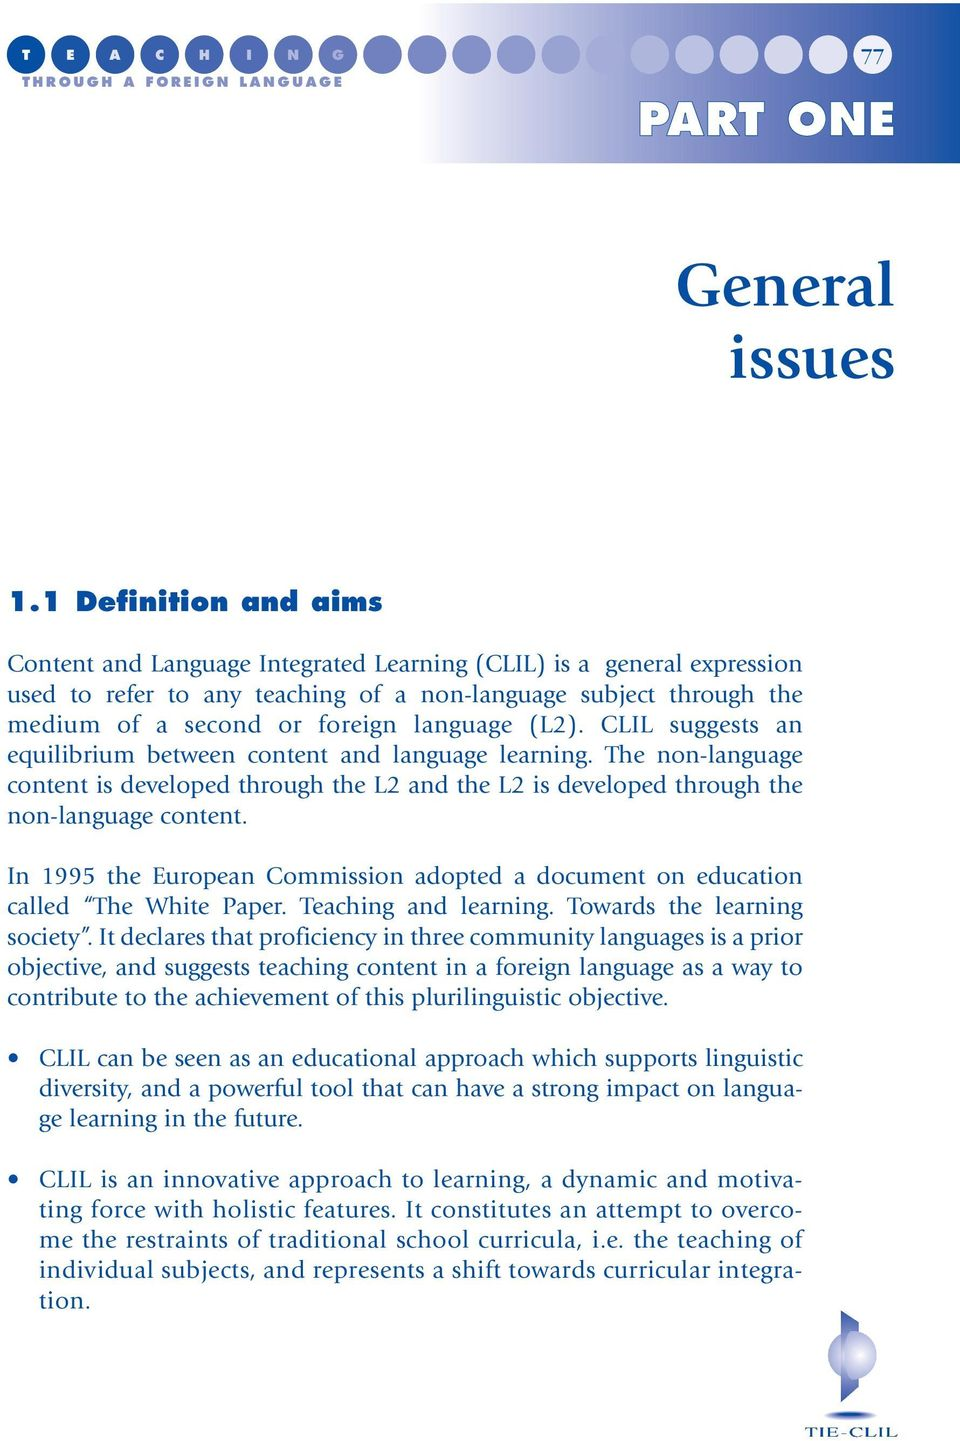 language (L2). CLIL suggests an equilibrium between content and language learning. The non-language content is developed through the L2 and the L2 is developed through the non-language content.